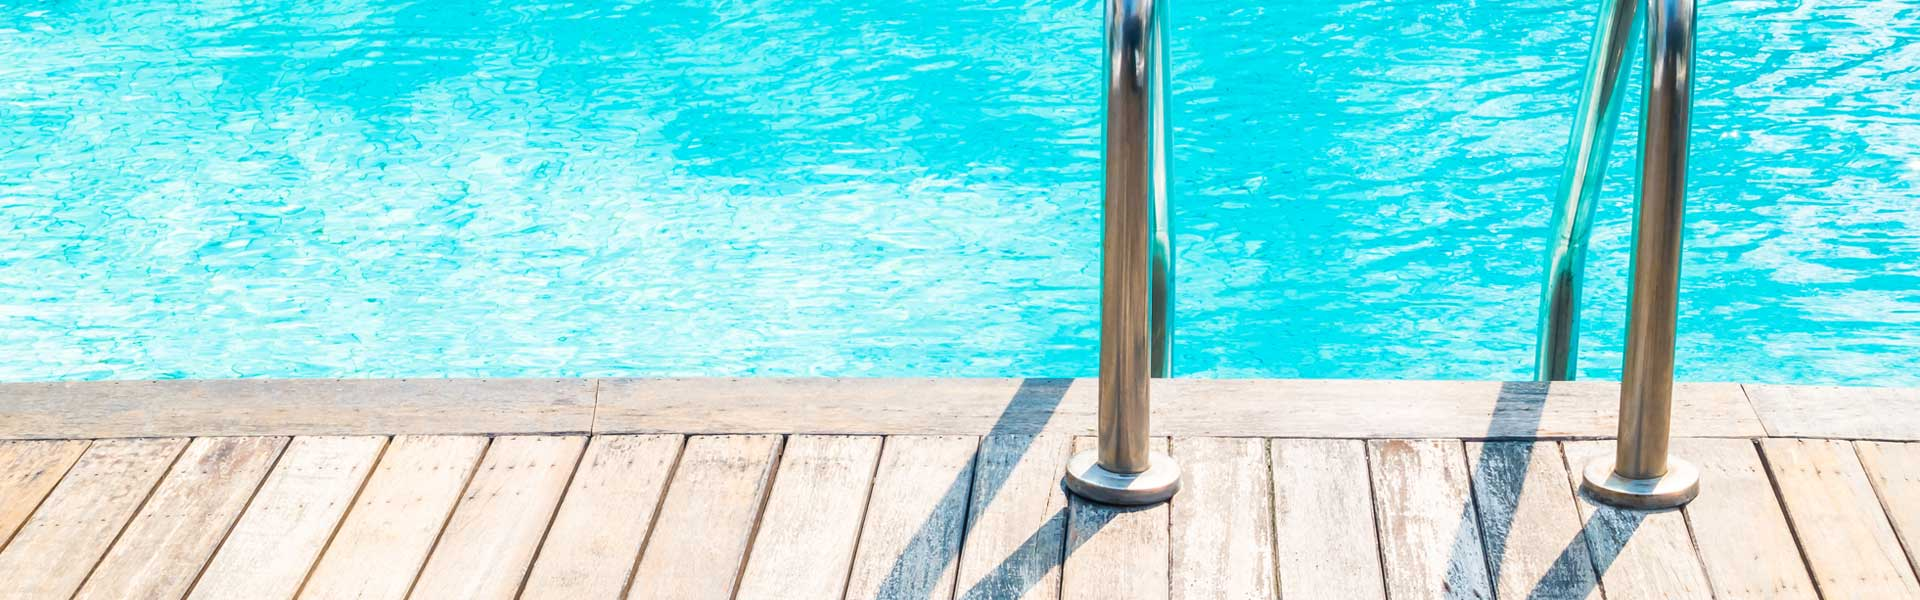 Order your Swimming Pool Pump in Time for Summer